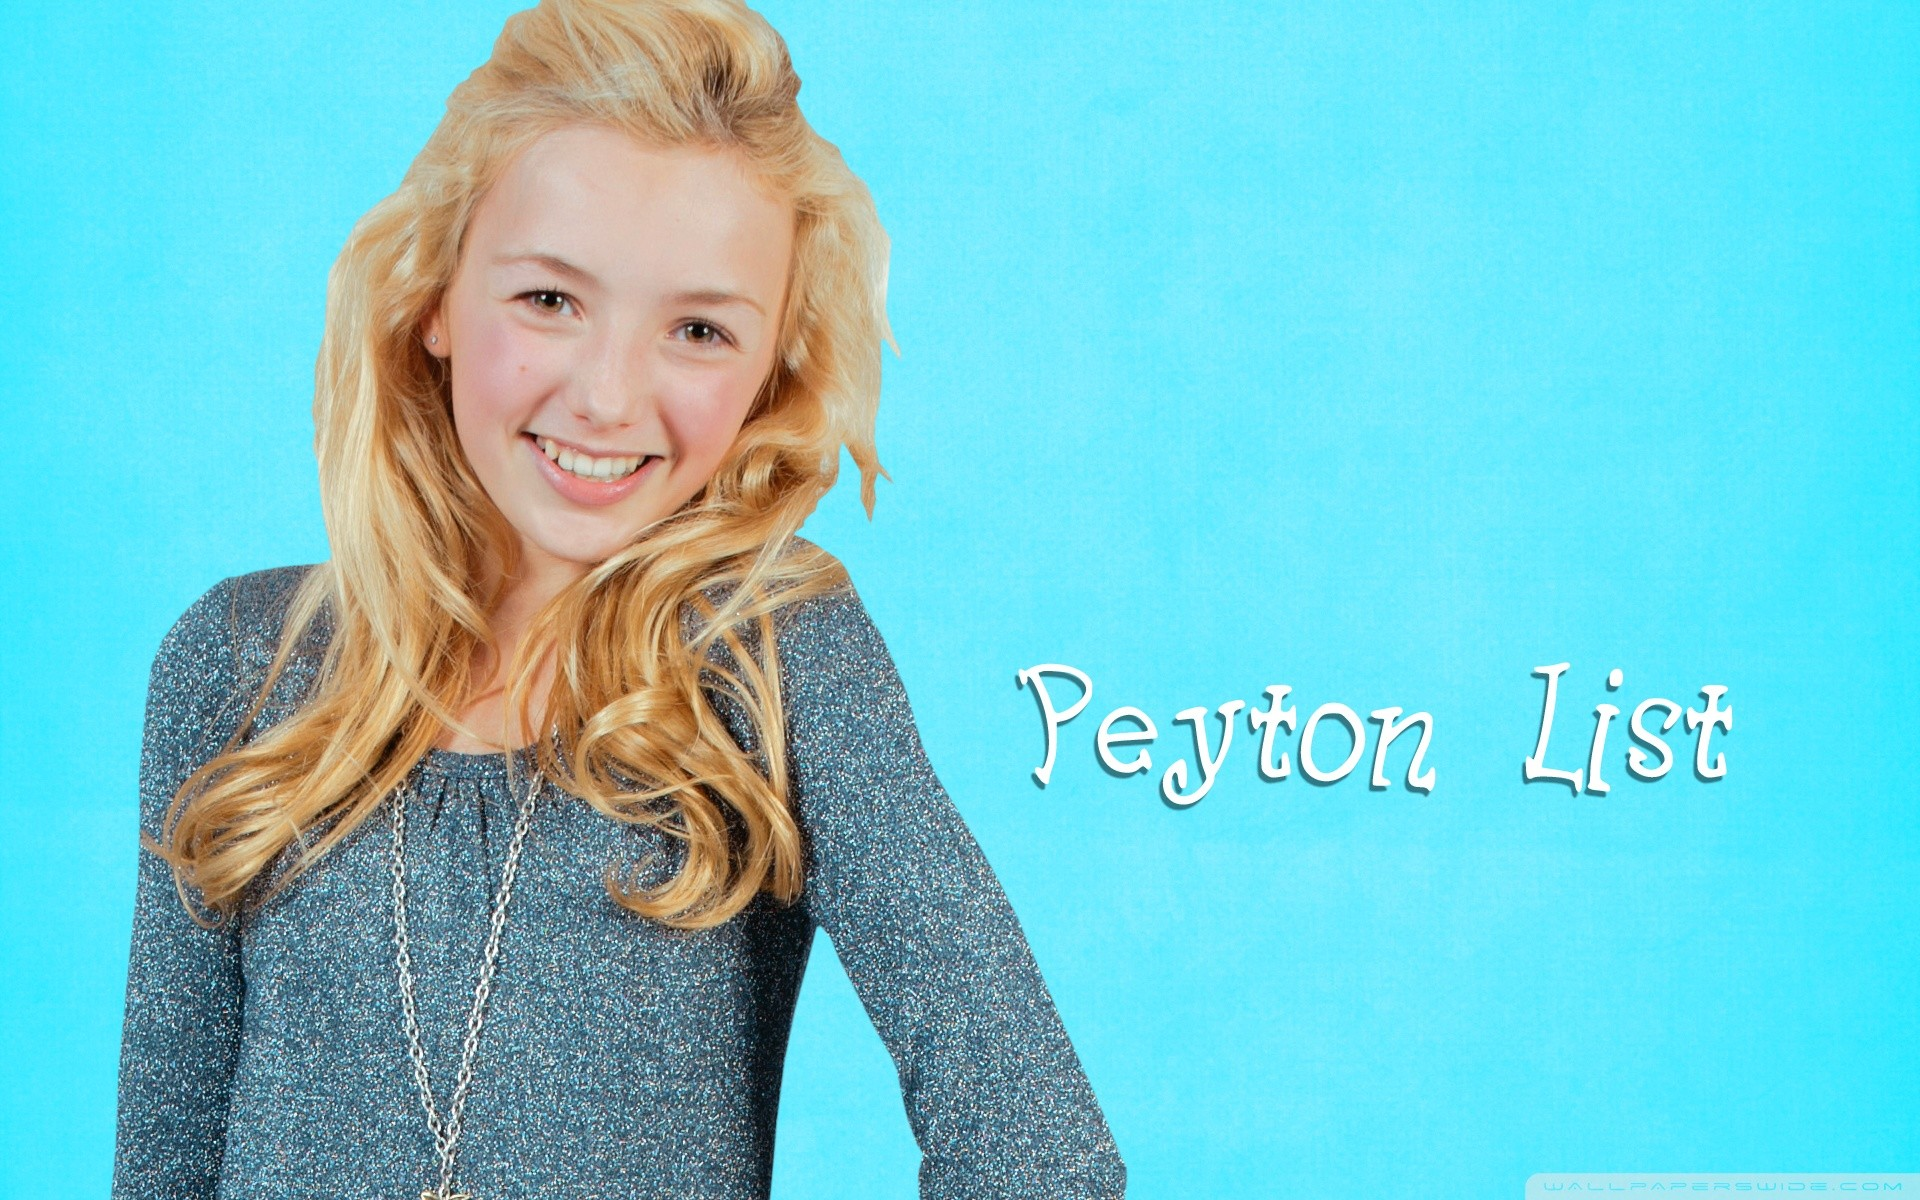 Rate This Wallpaper Src New Peyton List Wallpapers Wallpaper 1920x1200 Download Hd Wallpaper Wallpapertip View and download peyton list 4k ultra hd mobile wallpaper for free on your mobile phones, android phones and iphones. rate this wallpaper src new peyton list